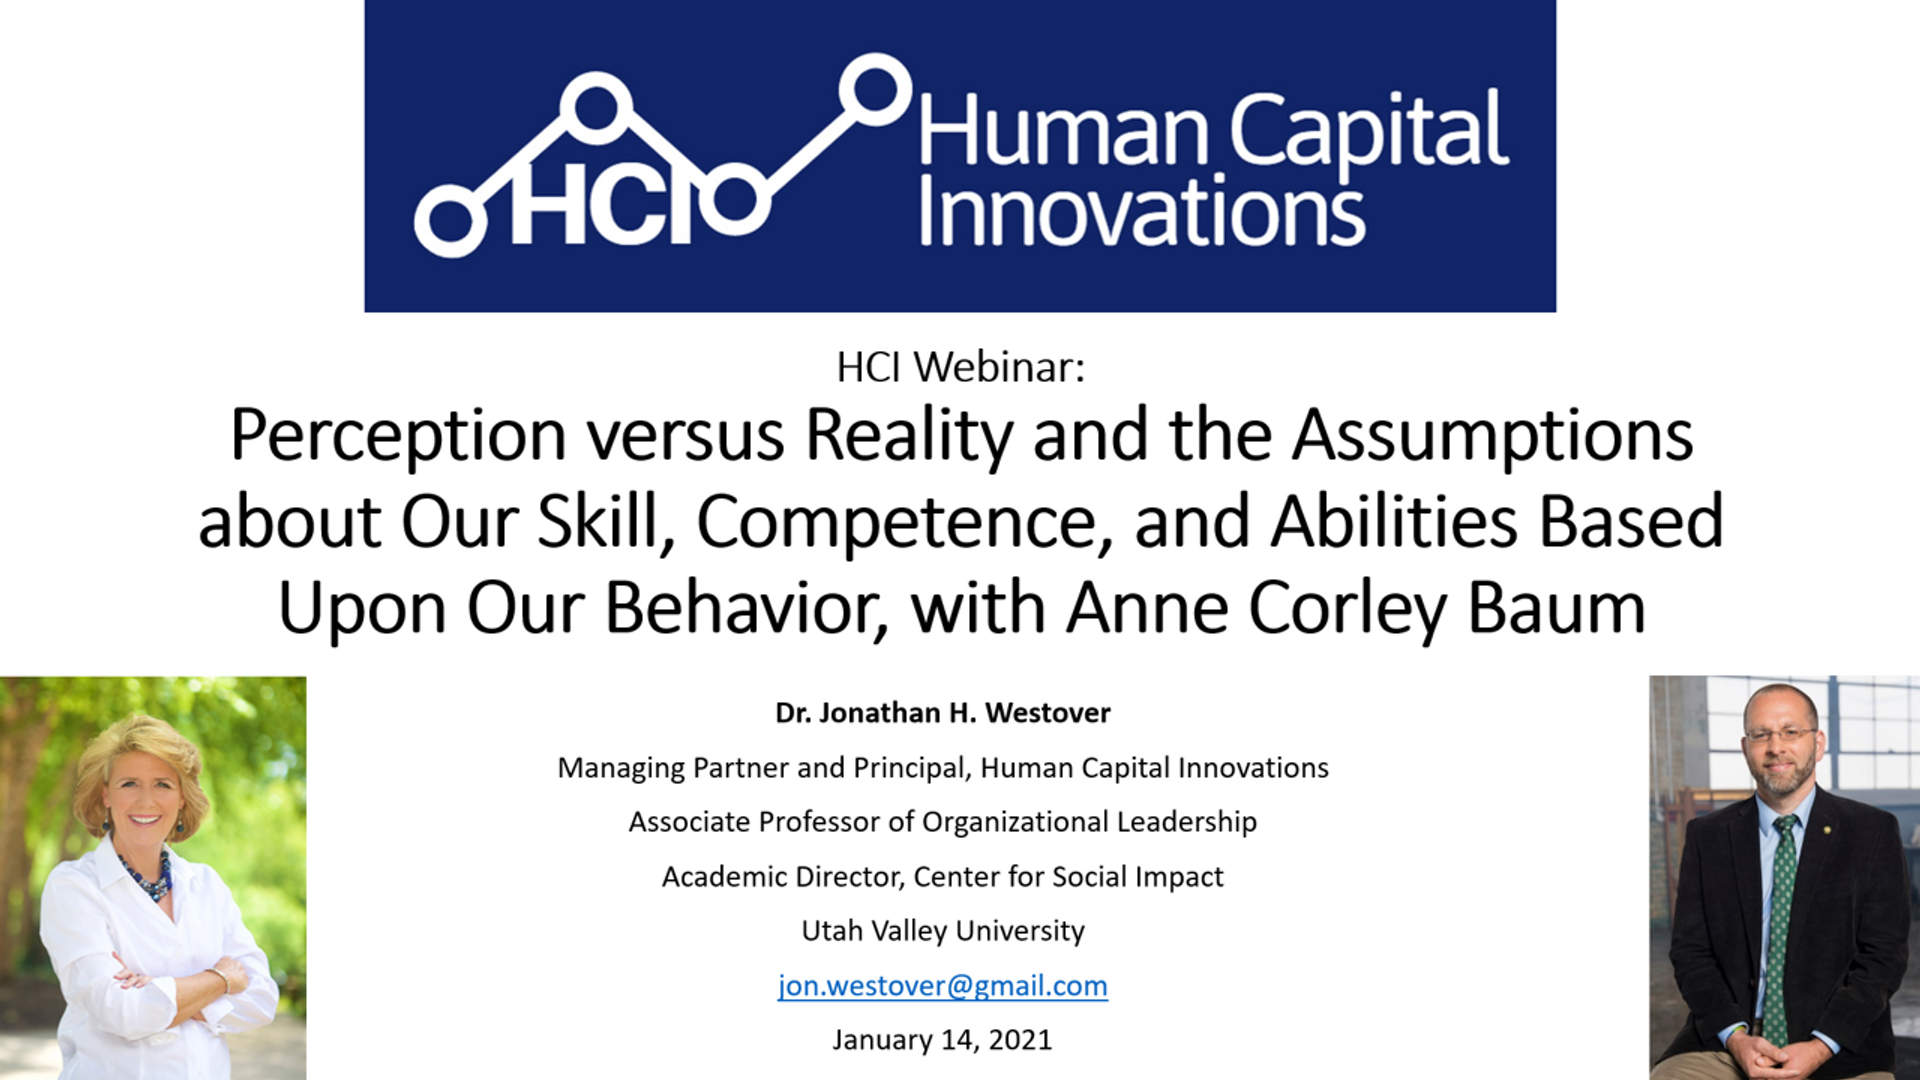 Perception vs. Reality & the Assumptions about Our Competence & Abilities